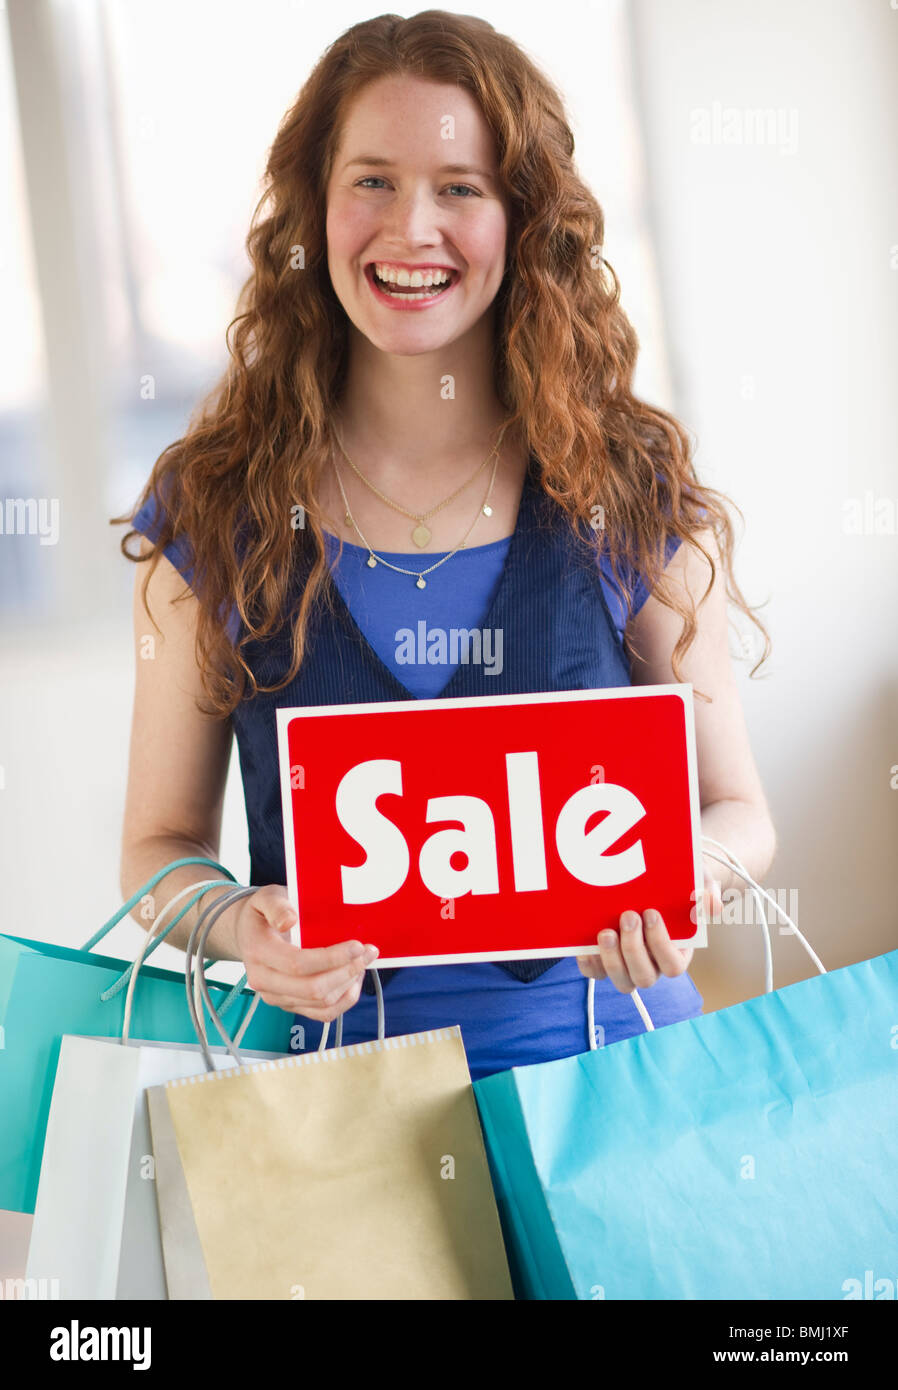 Woman on a shopping spree Photo Stock